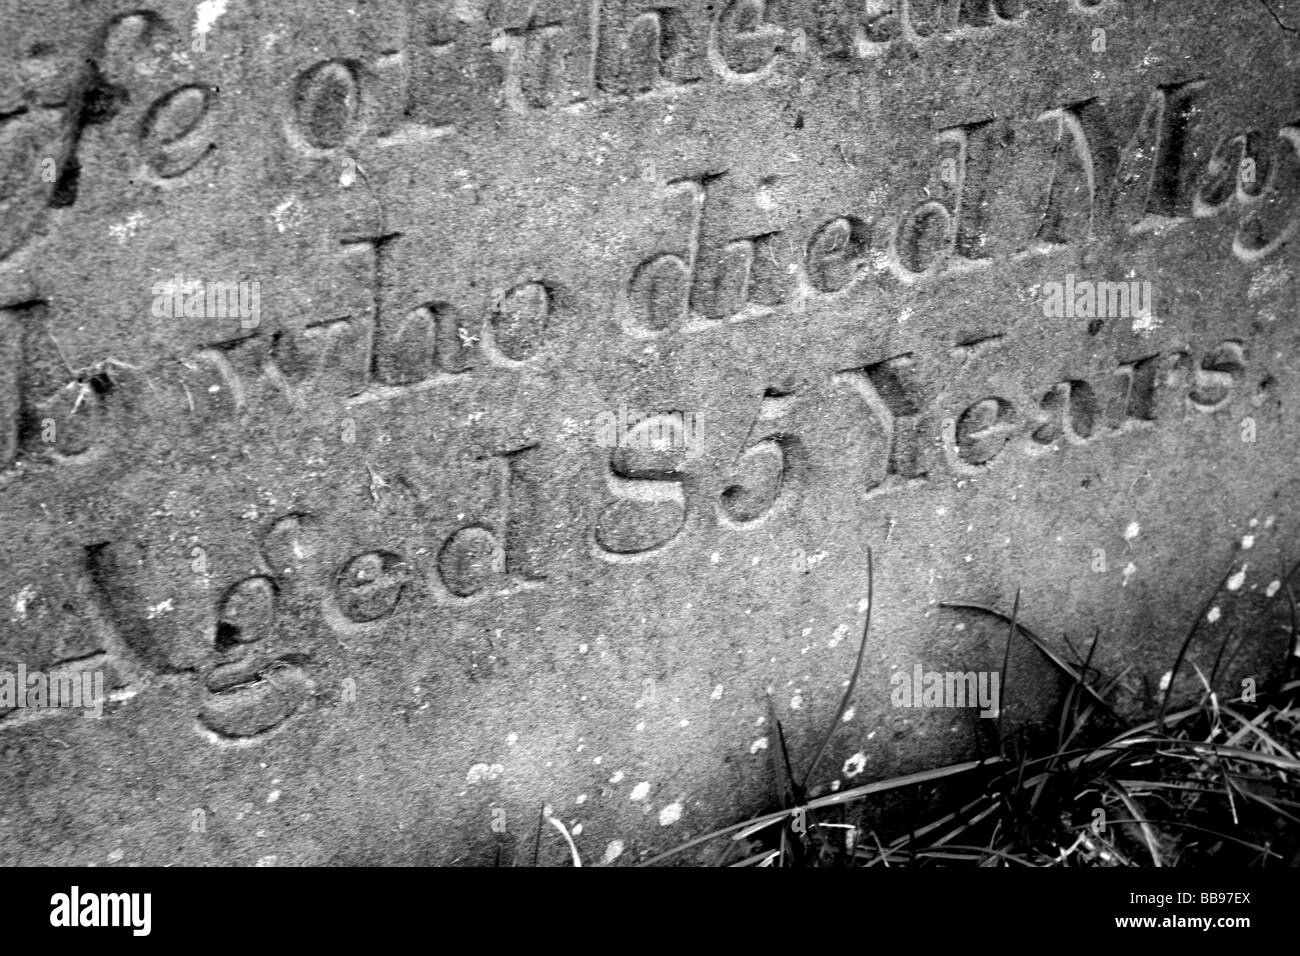 Close up of a tombstone showing someone who died aged 85 - Stock Image